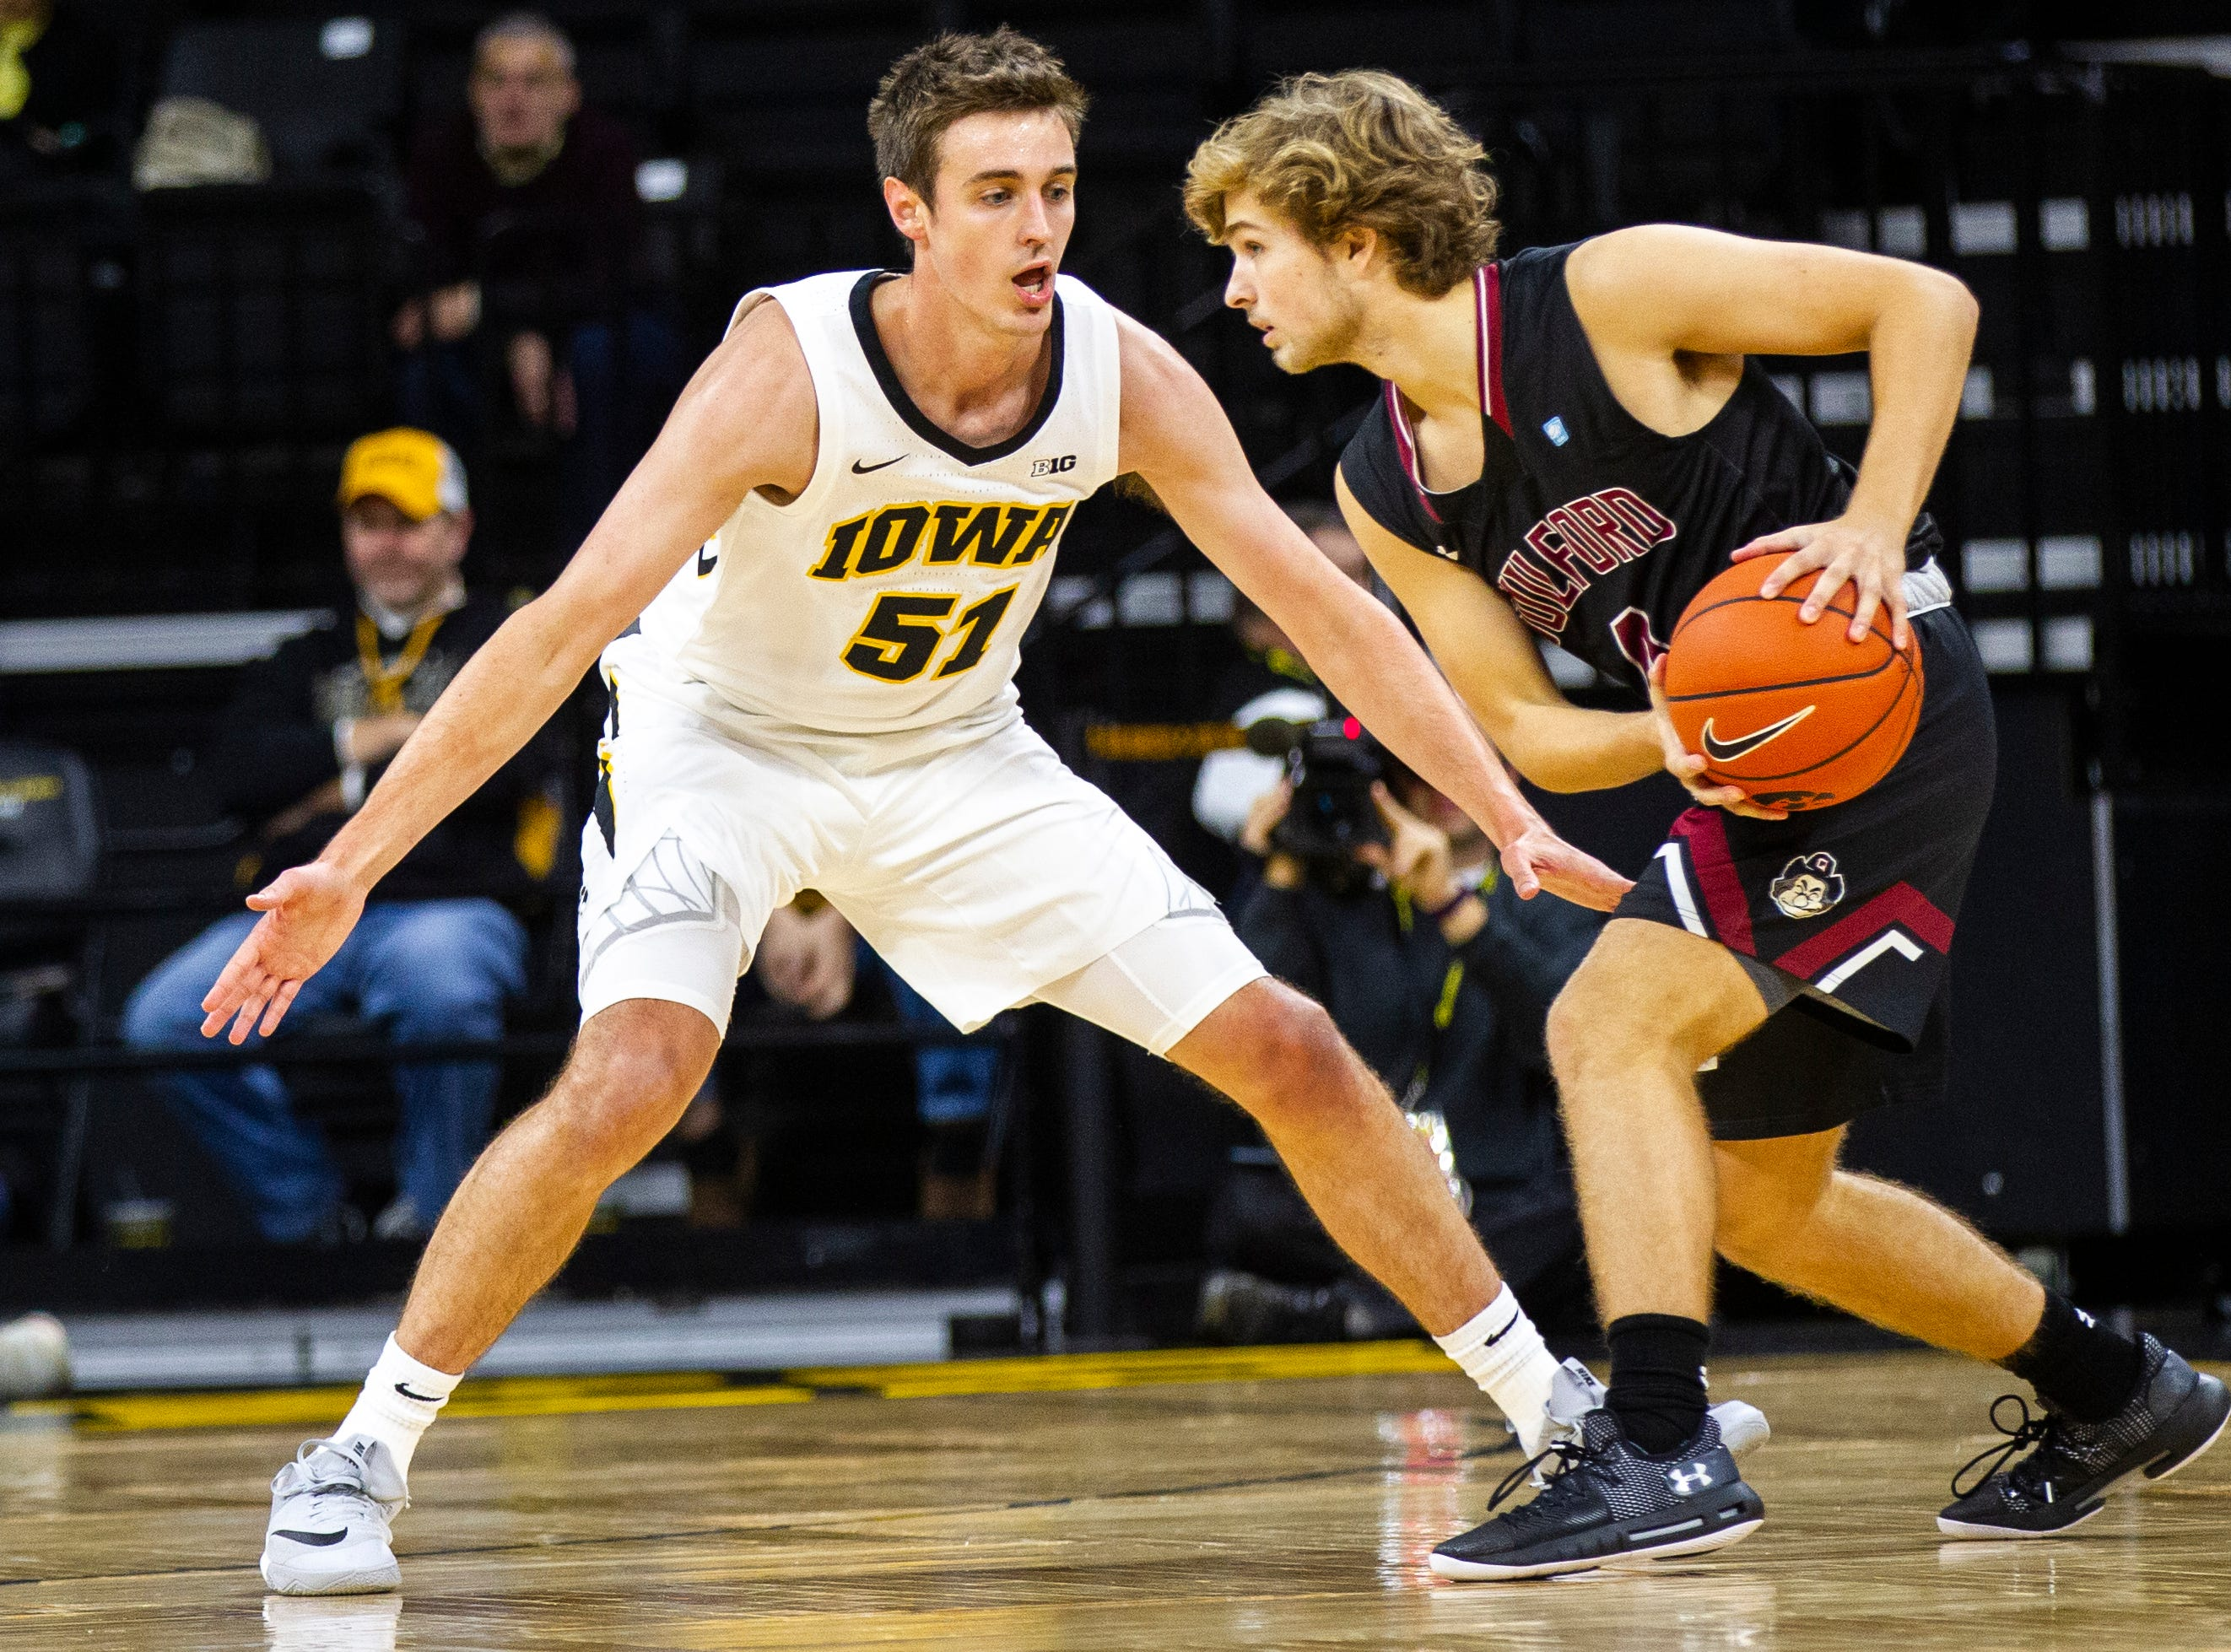 Iowa forward Nicholas Baer (51) defends Guildford's Luke Harkins (4) during a men's basketball exhibition game on Sunday, Nov. 4, 2018, at Carver-Hawkeye Arena in Iowa City.